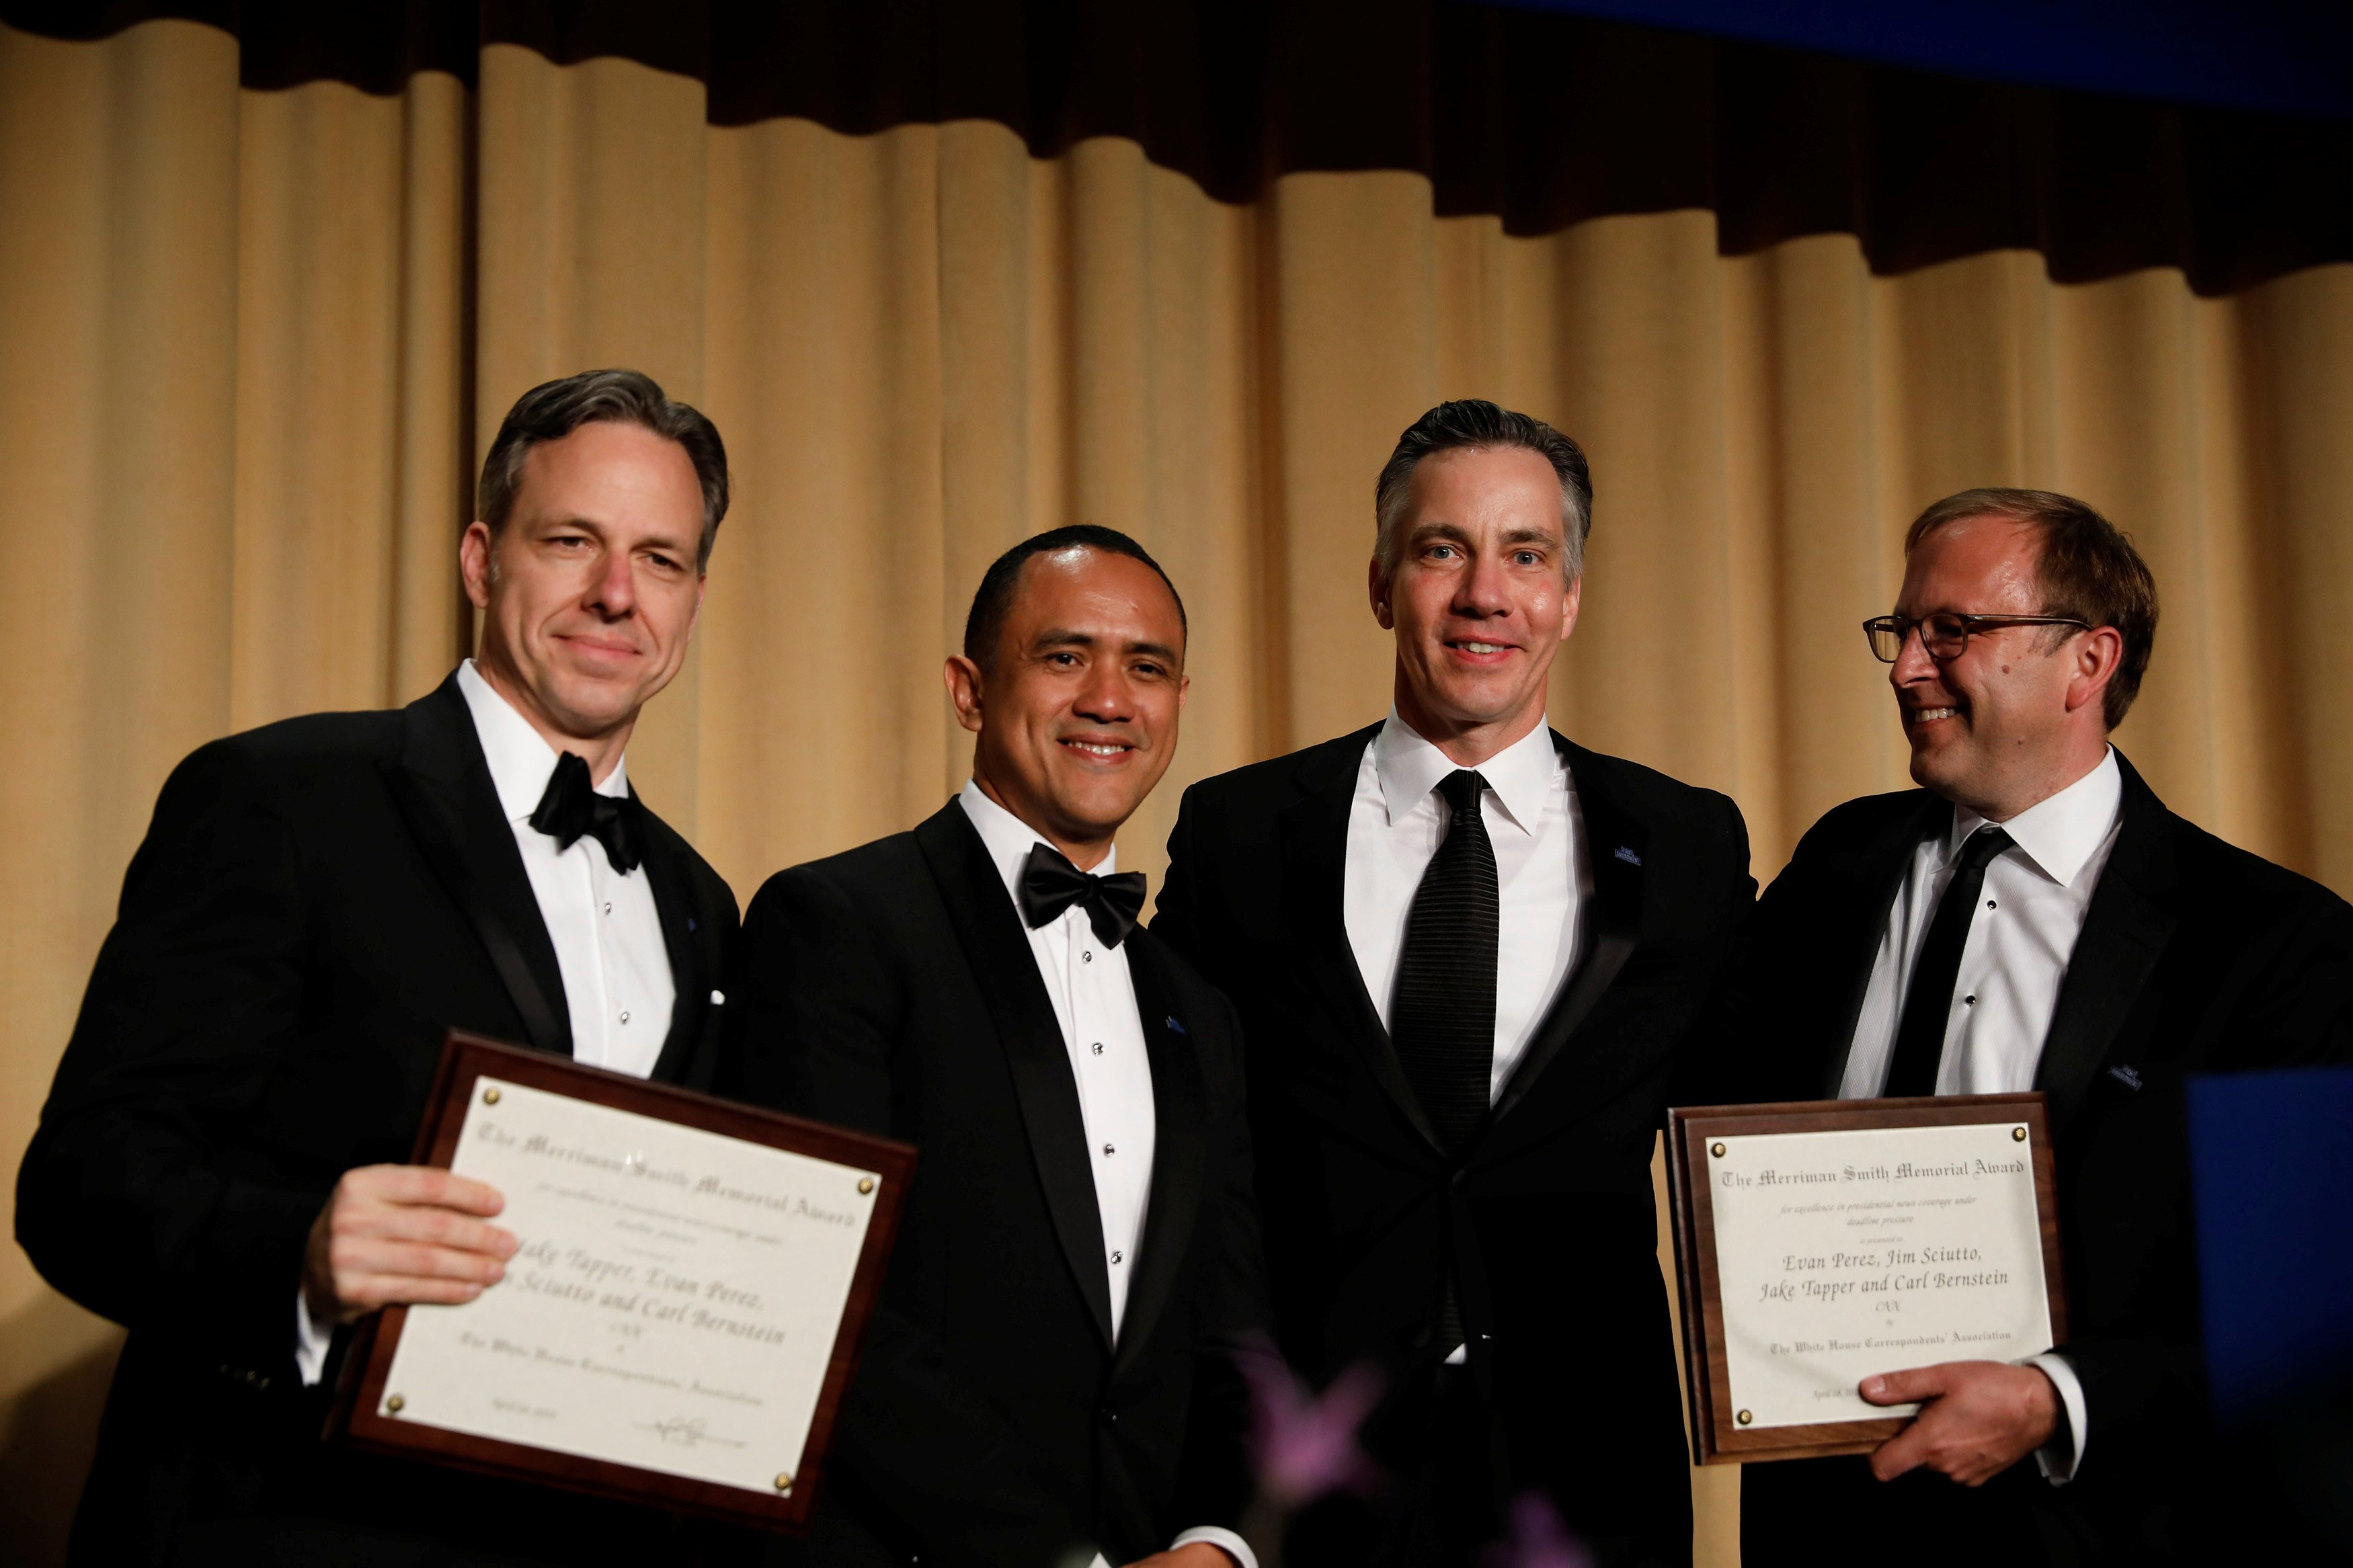 (L-R) CNN's Jake Tapper, Evan Perez and Jim Sciutto accept the Merriman Smith Award from ABC News reporter Jonathan Karl at the White House Correspondents' Association dinner in Washington, U.S., April 28, 2018. REUTERS/Aaron P. Bernstein - RC14CAC9A110